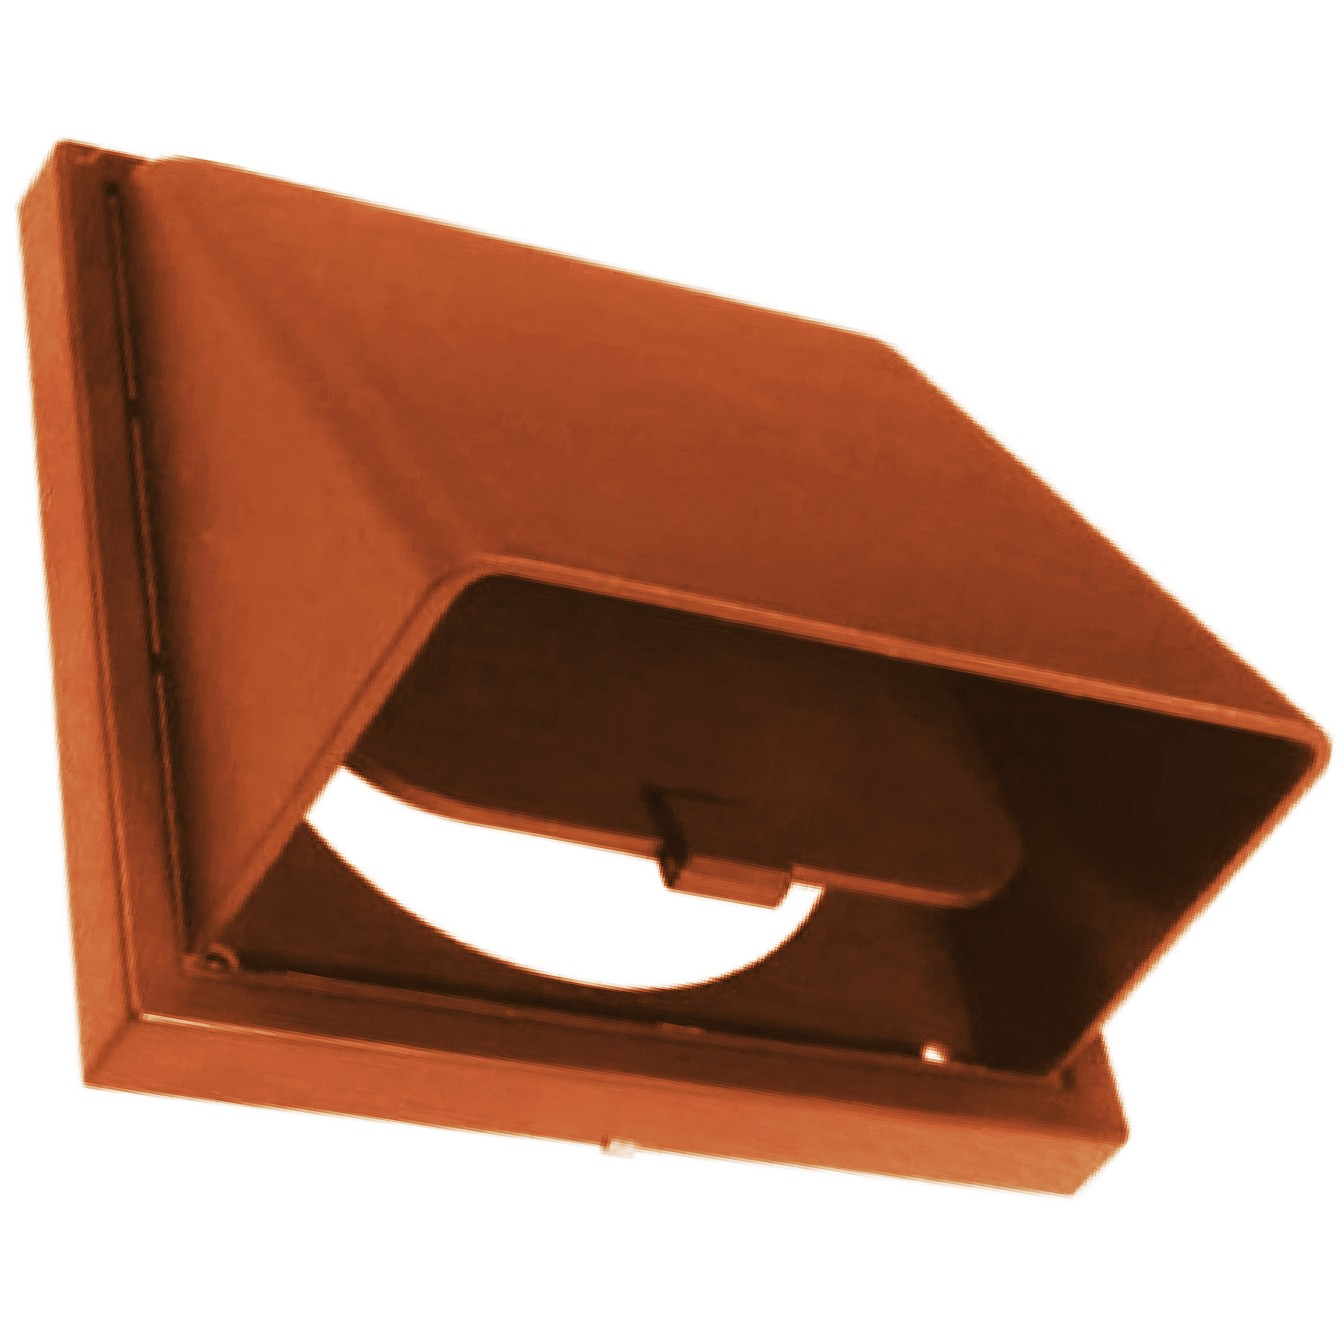 Manrose Round Ducting Pipe Wall Hood Cowled Outlet - Terracotta, 150mm